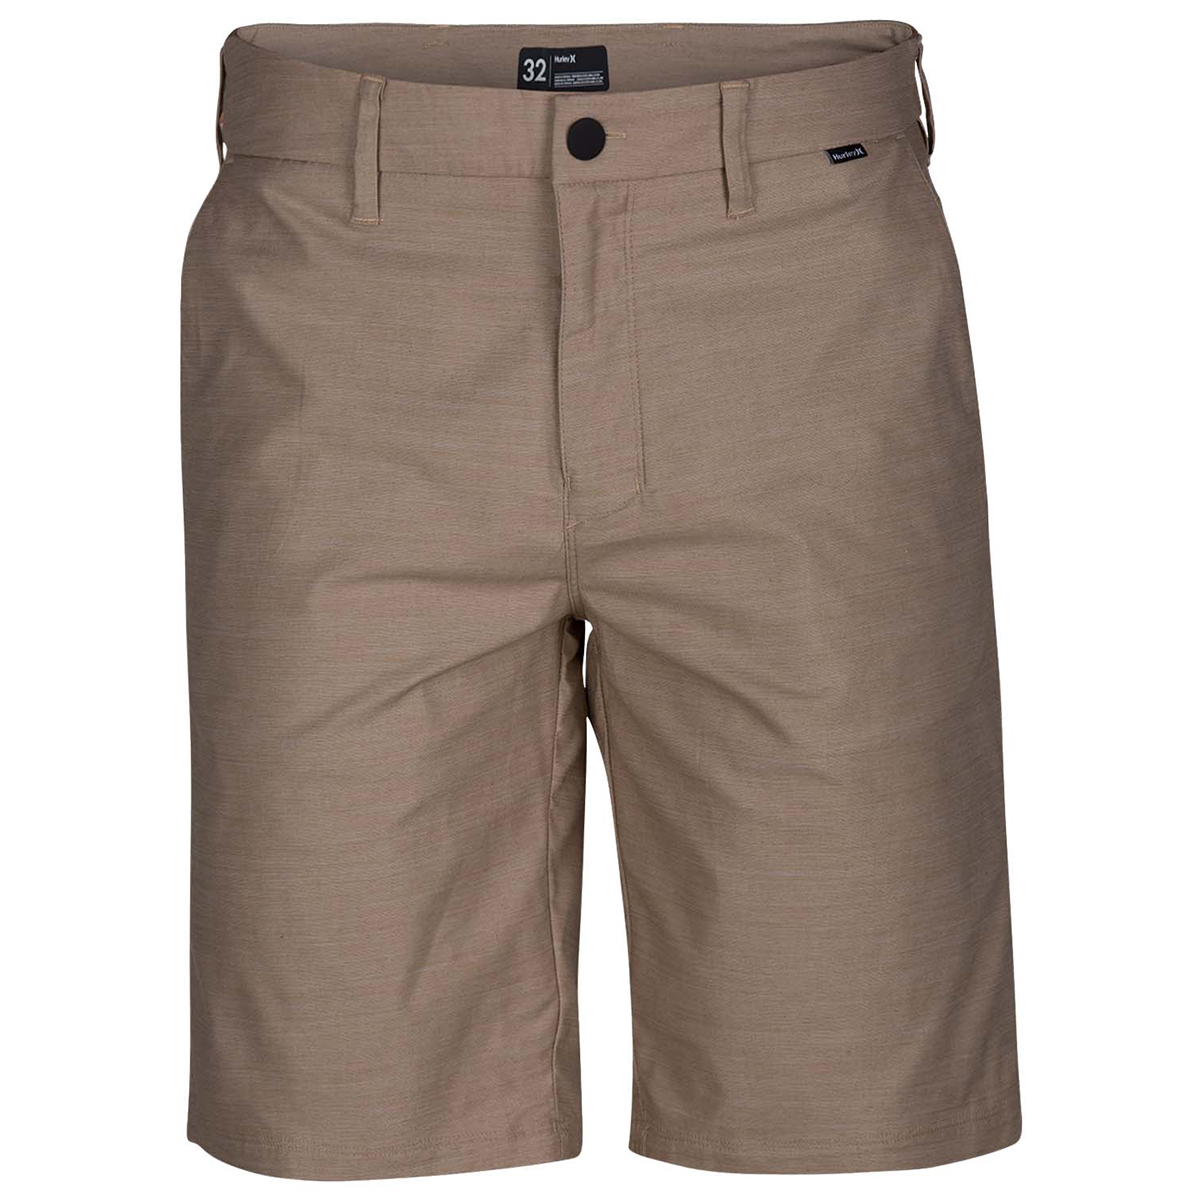 Hurley Men's Dri-Fit Breathe Chino Shorts, 21 In. - Brown, 30